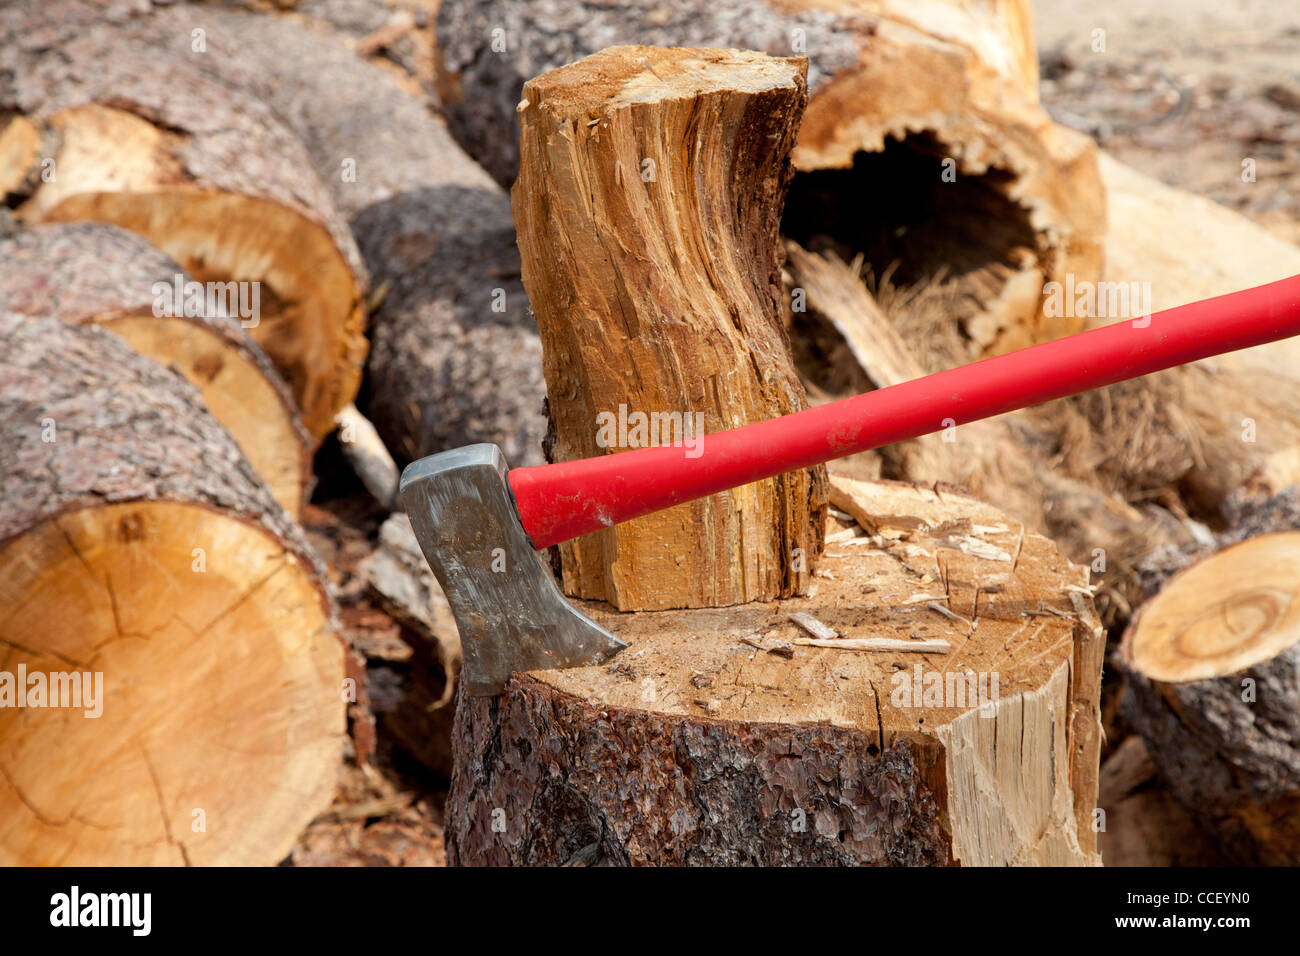 An axe wedged into a tree stump - Stock Image